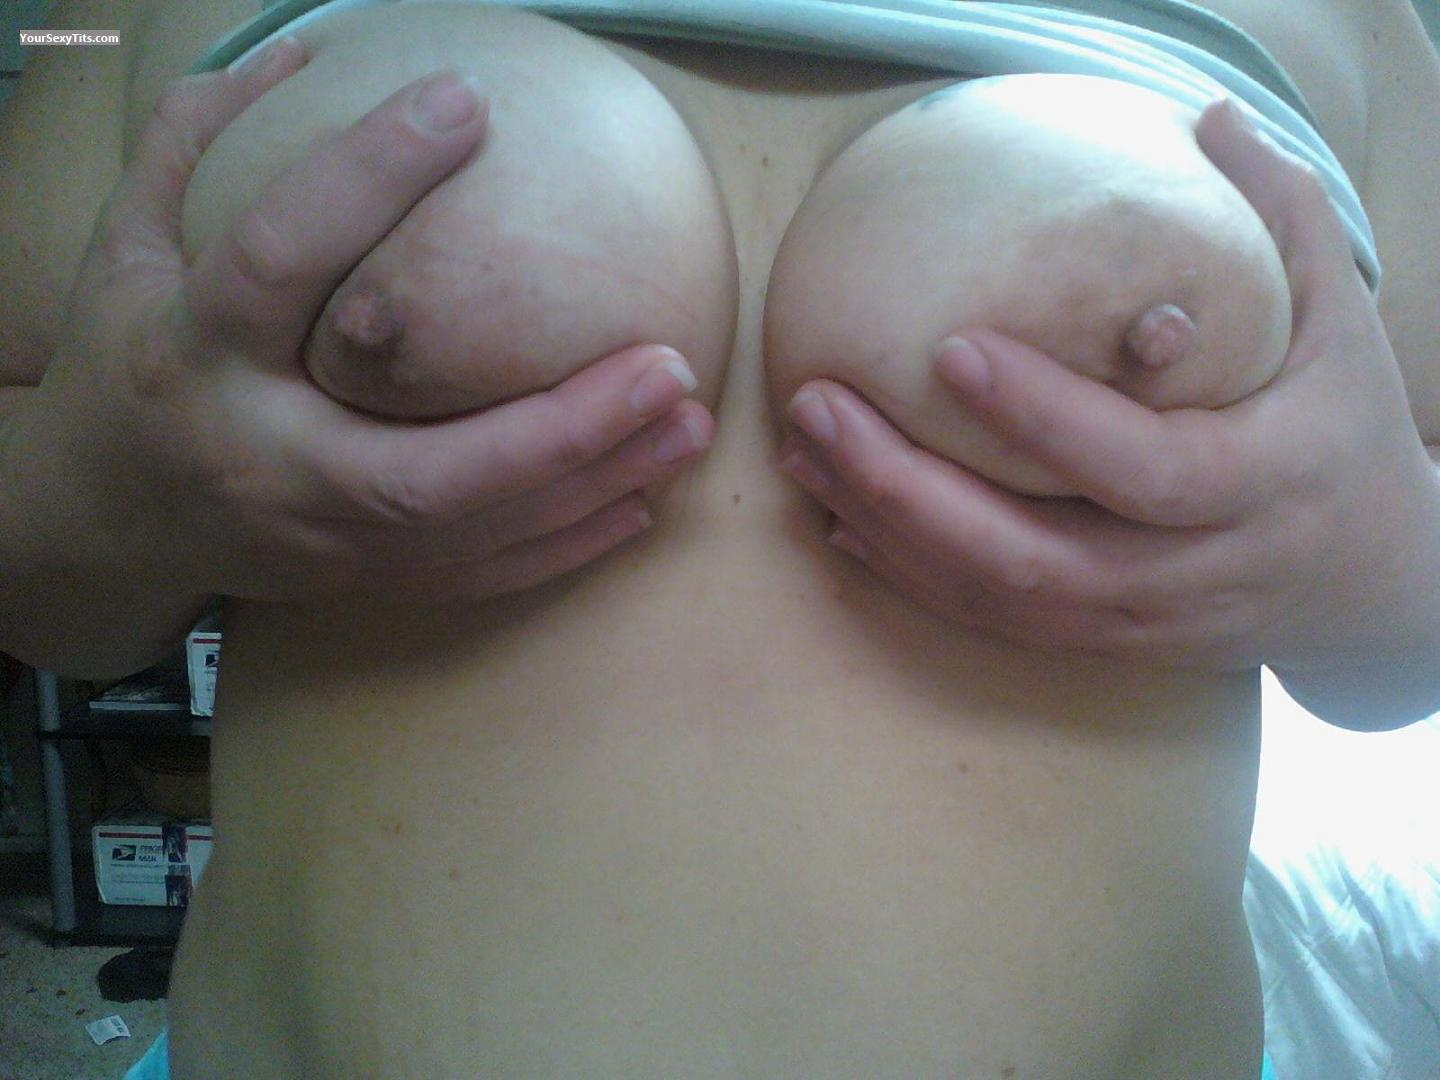 Tit Flash: My Big Tits (Selfie) - Nani from United States